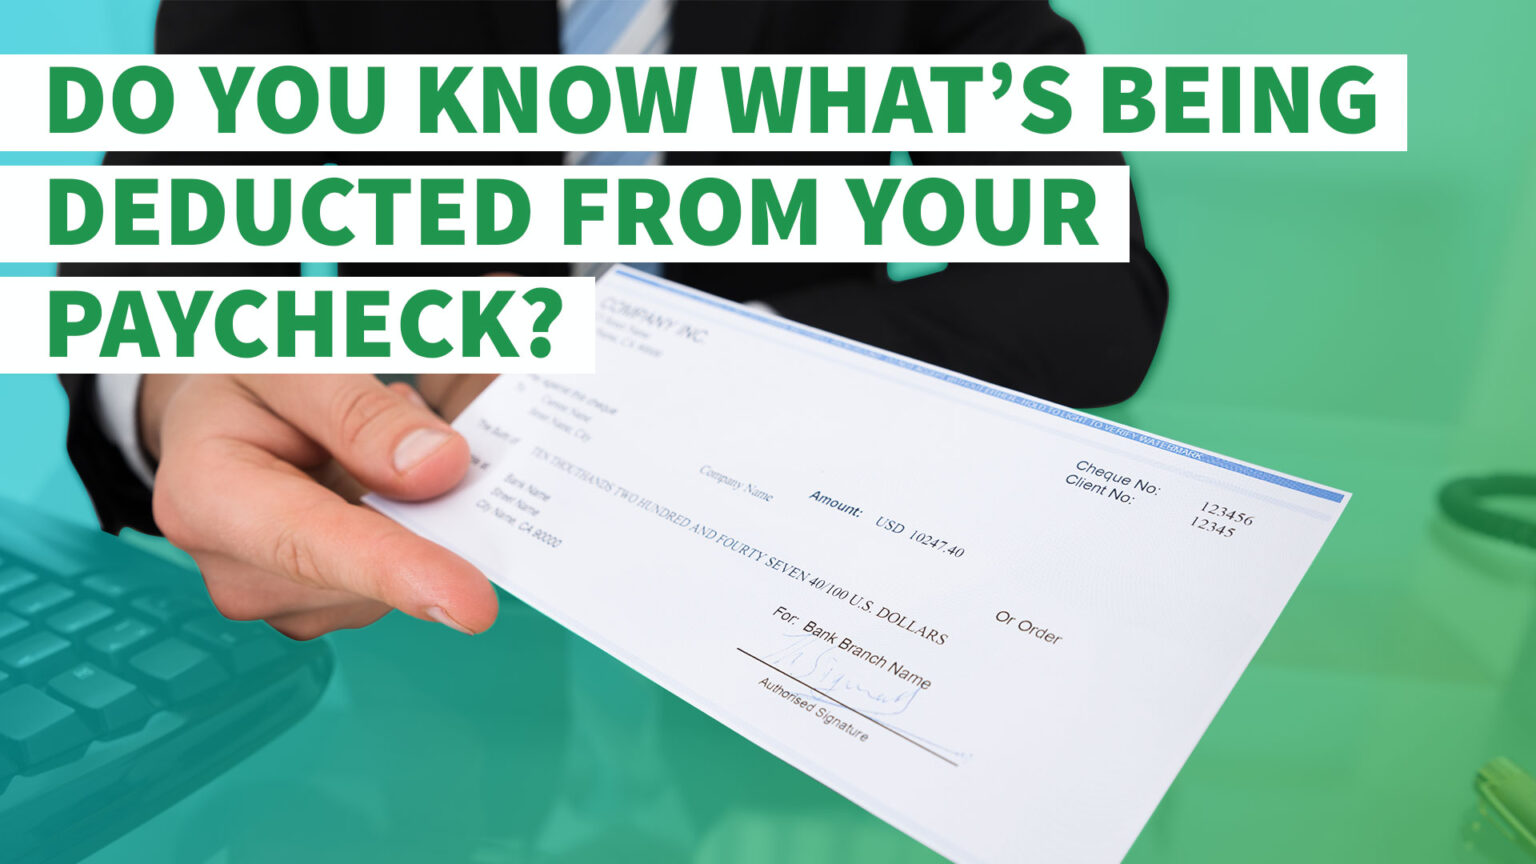 why was no federal income tax withheld from my paycheck